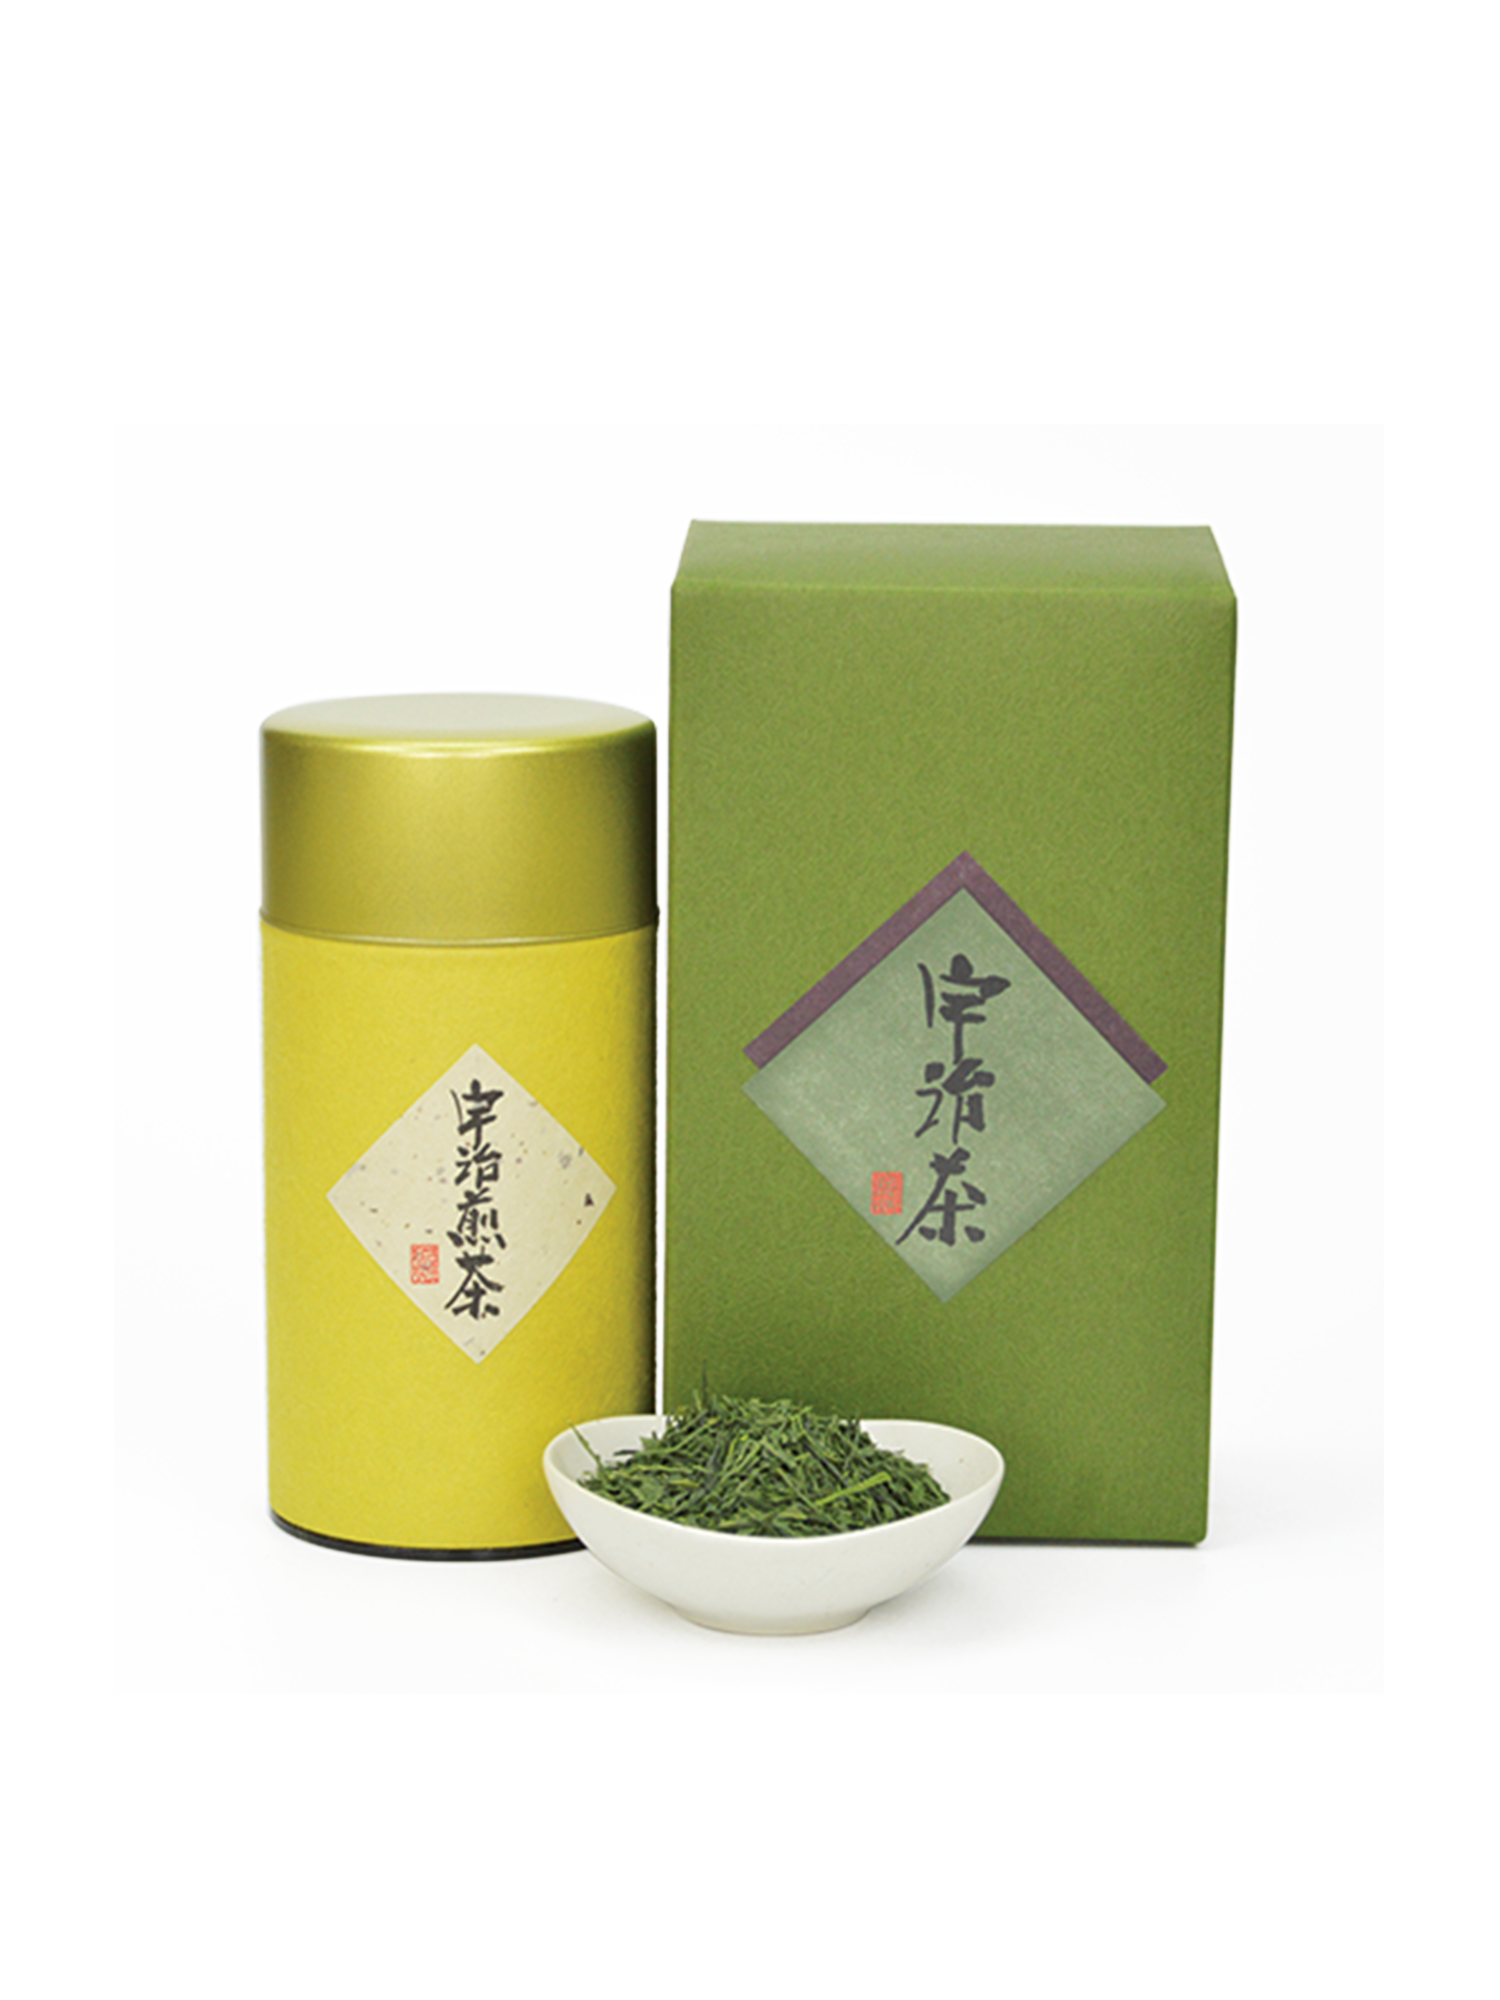 Teabox of Sencha